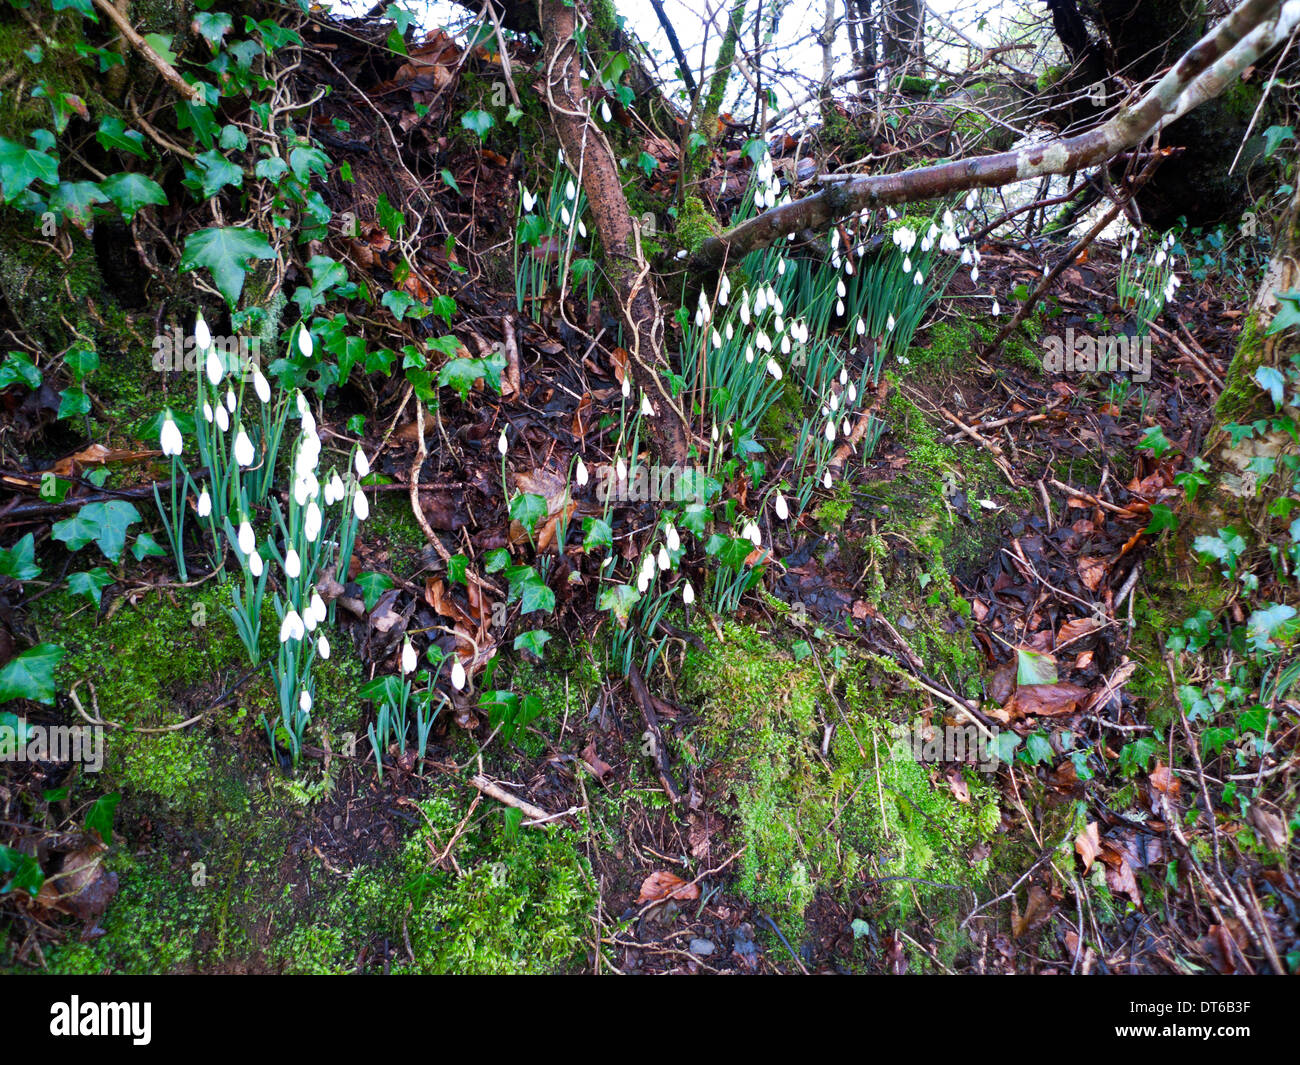 Snowdrops in woodland Carmarthenshire Wales UK  KATHY DEWITT - Stock Image